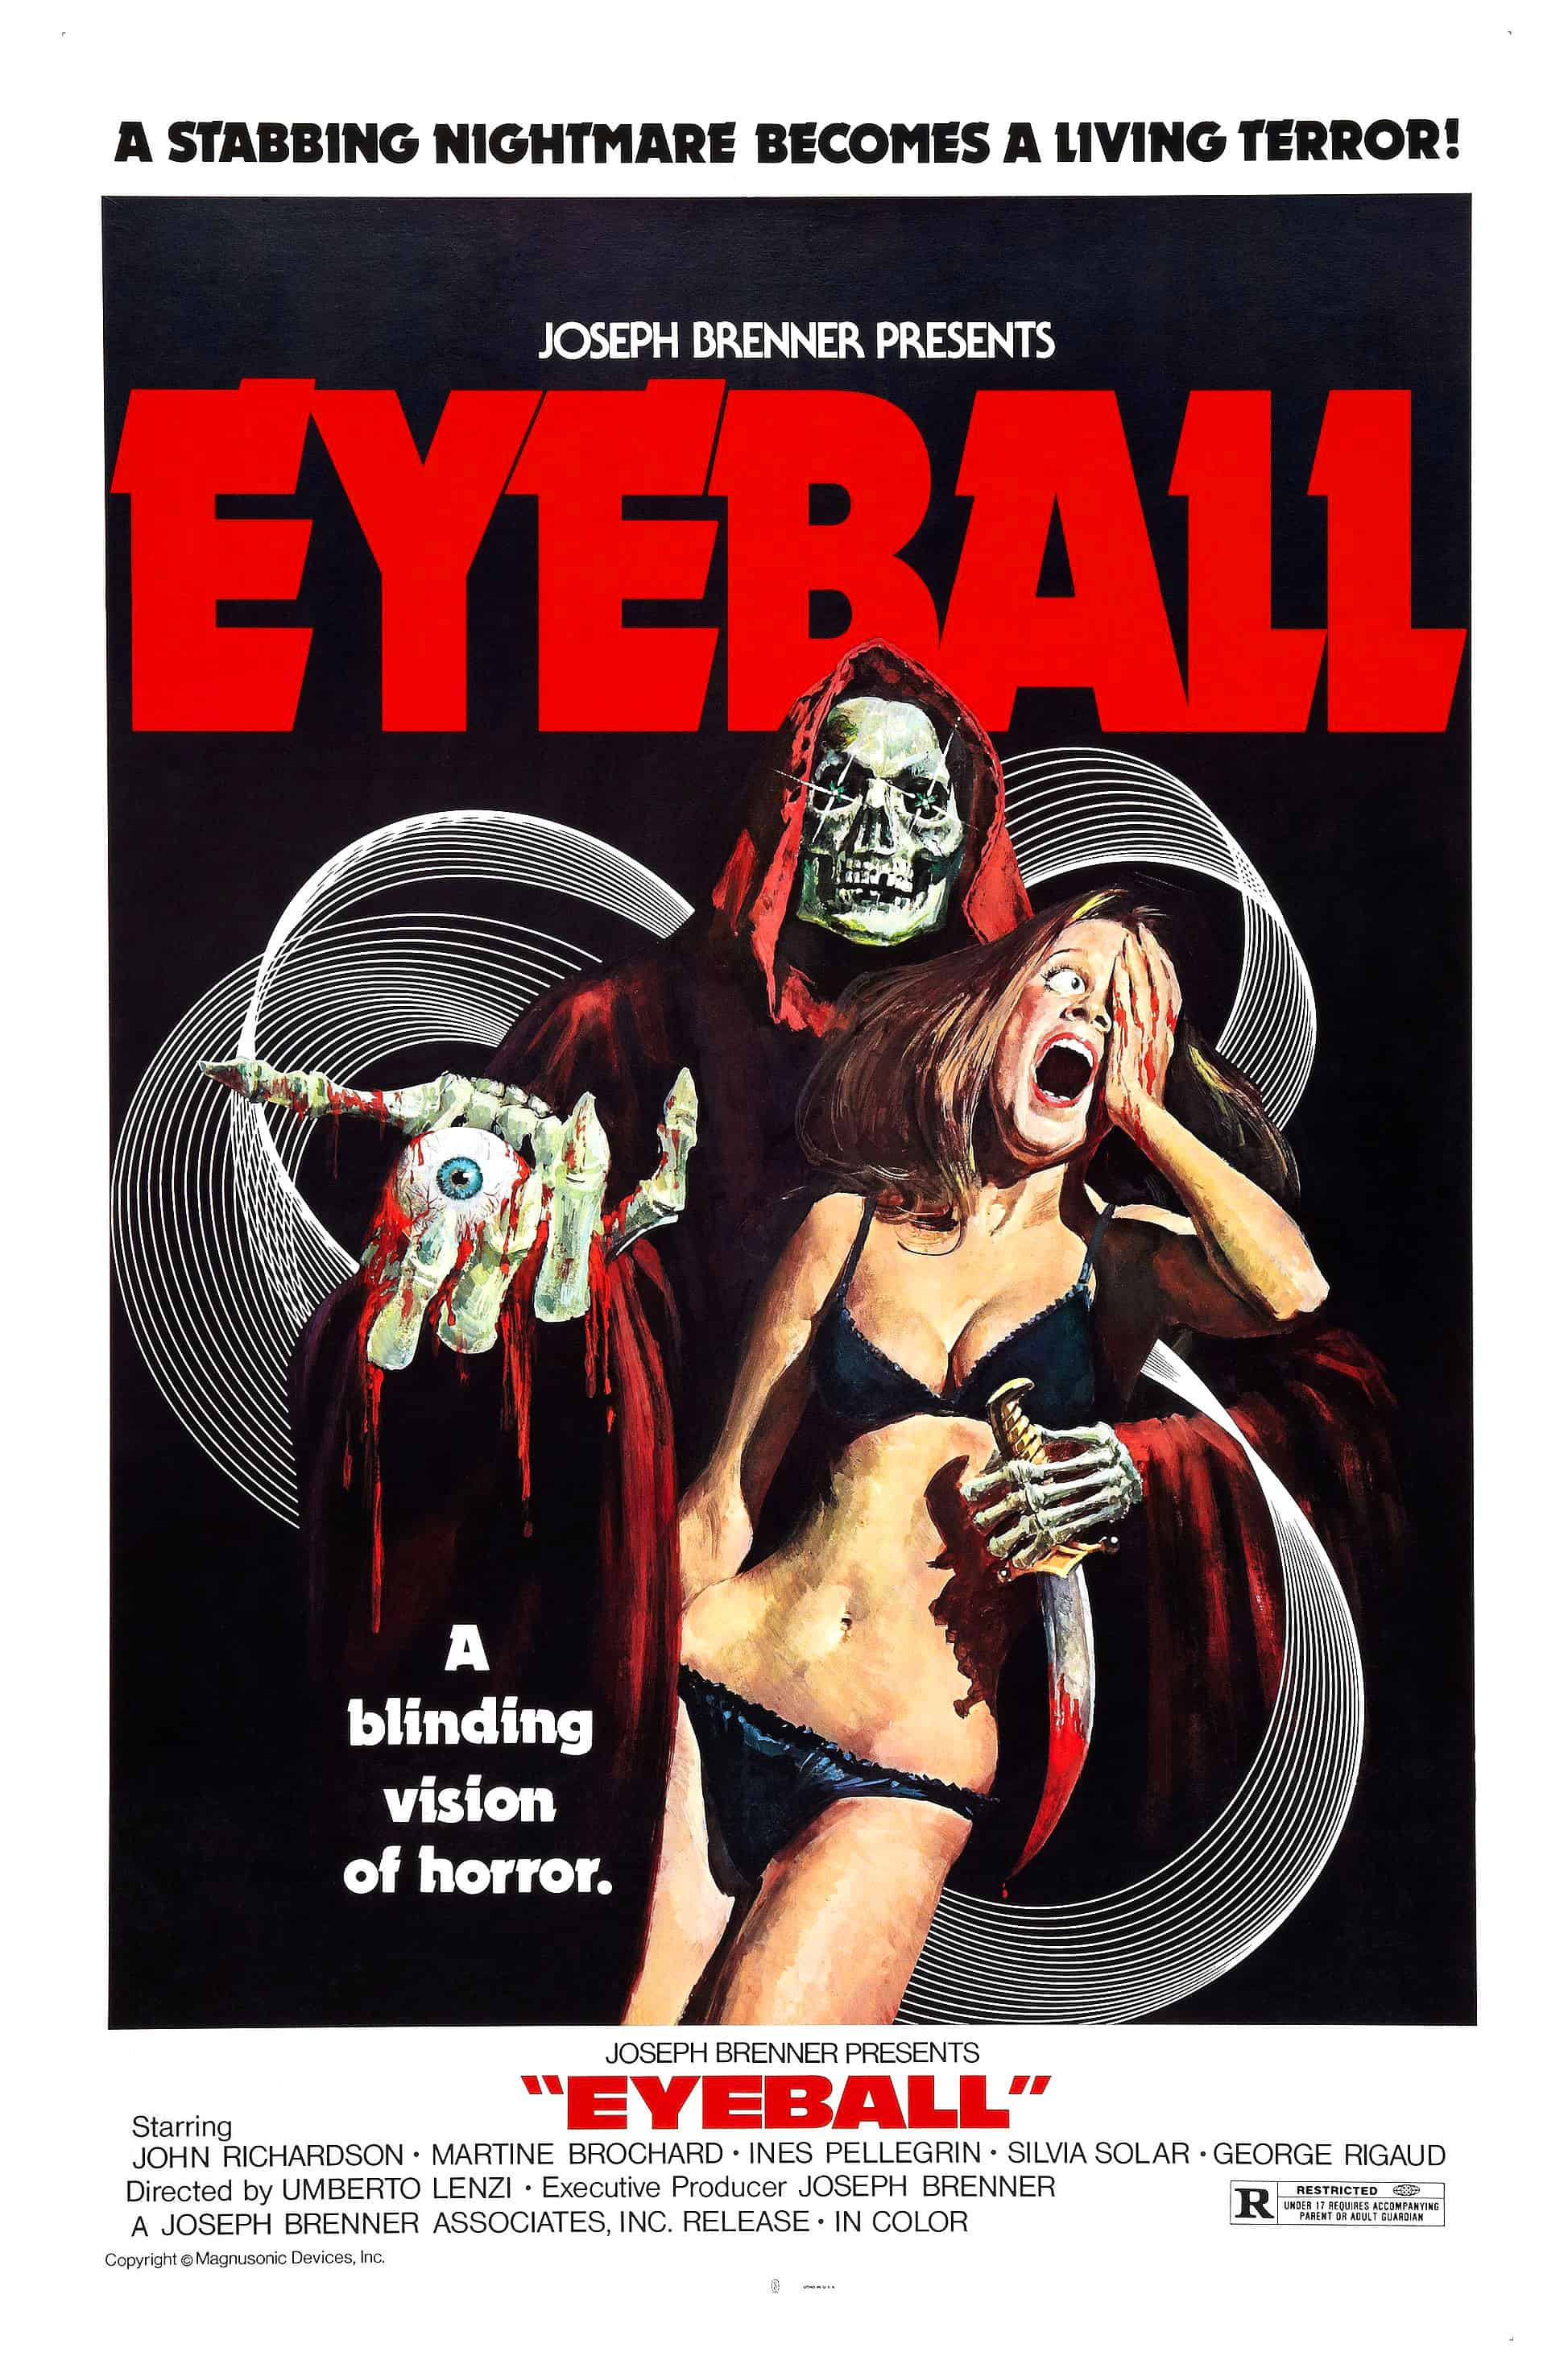 Movie Posters We Love: Eyeball (1975)